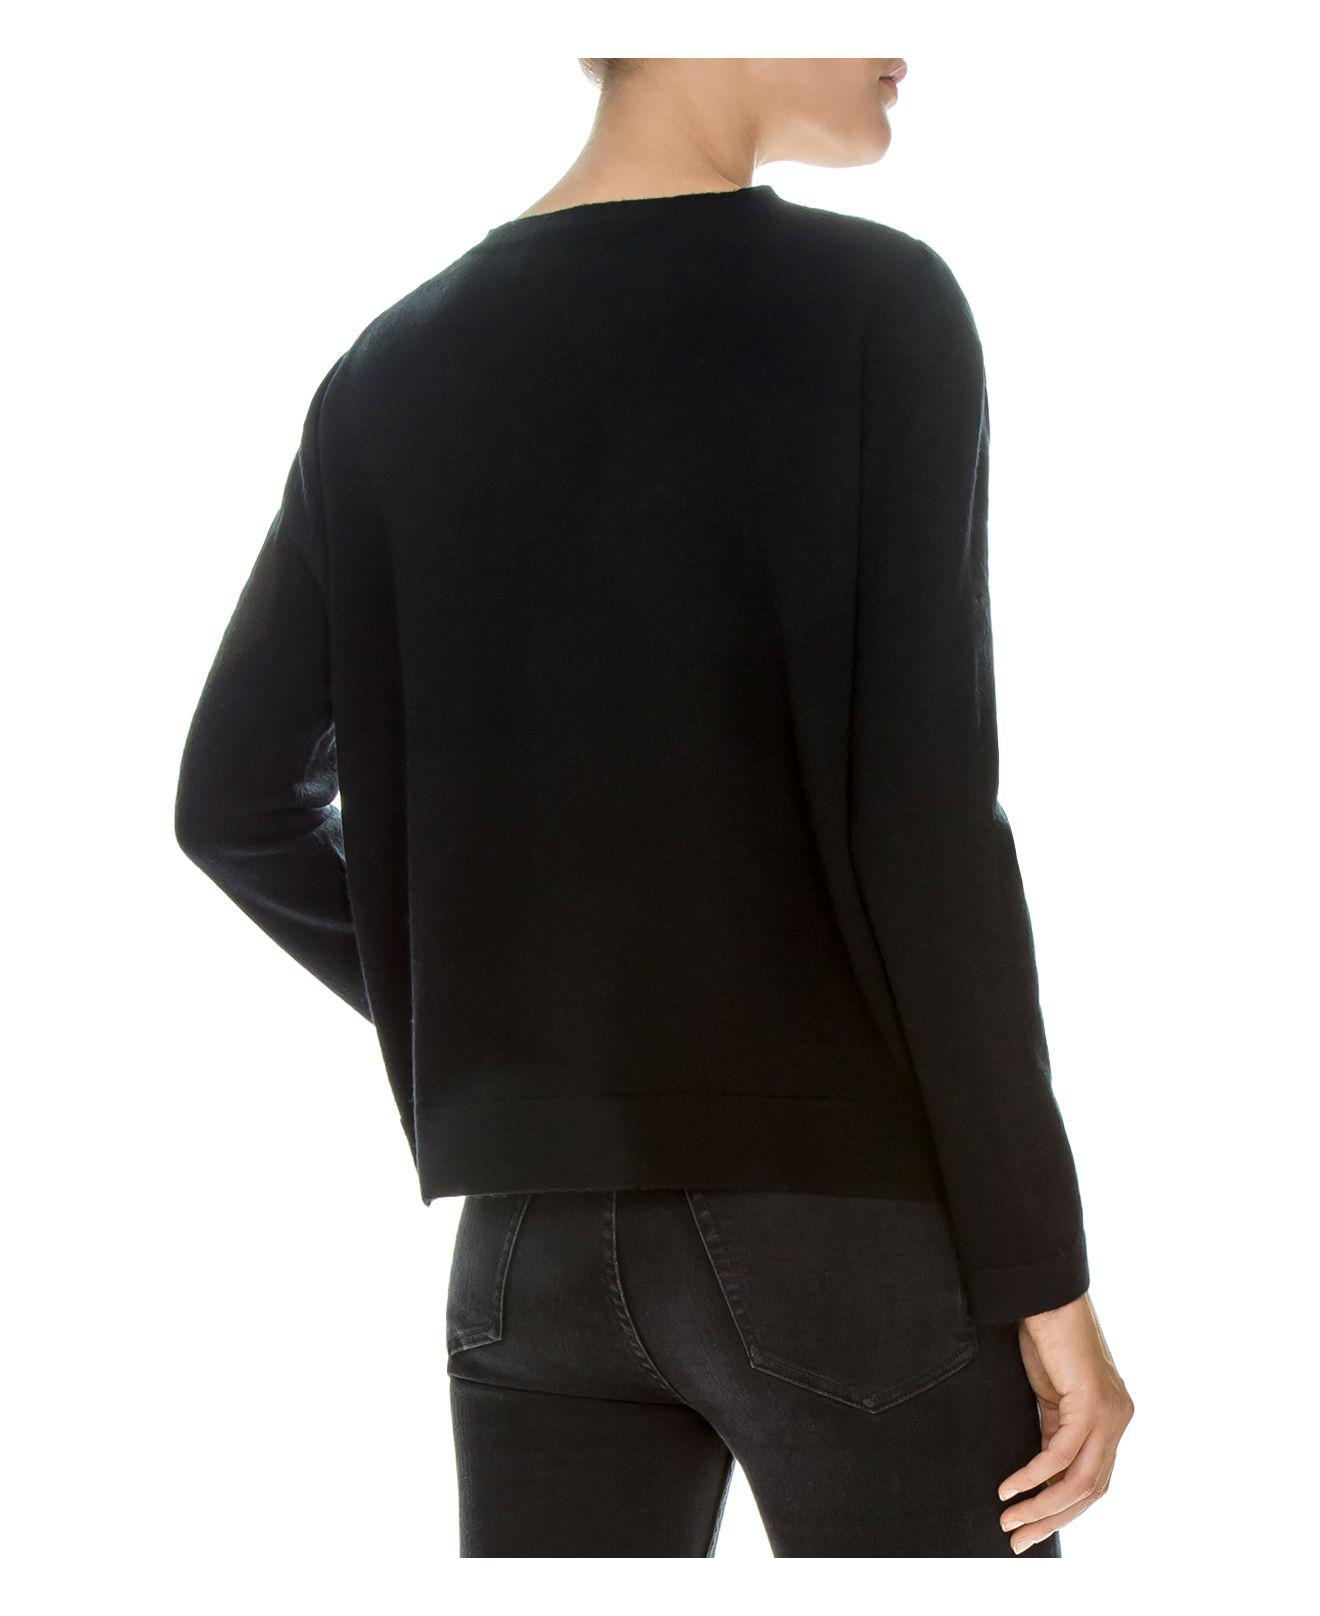 Lyst - The Kooples Lace-inset Wool-blend Sweater in Black 382f974be